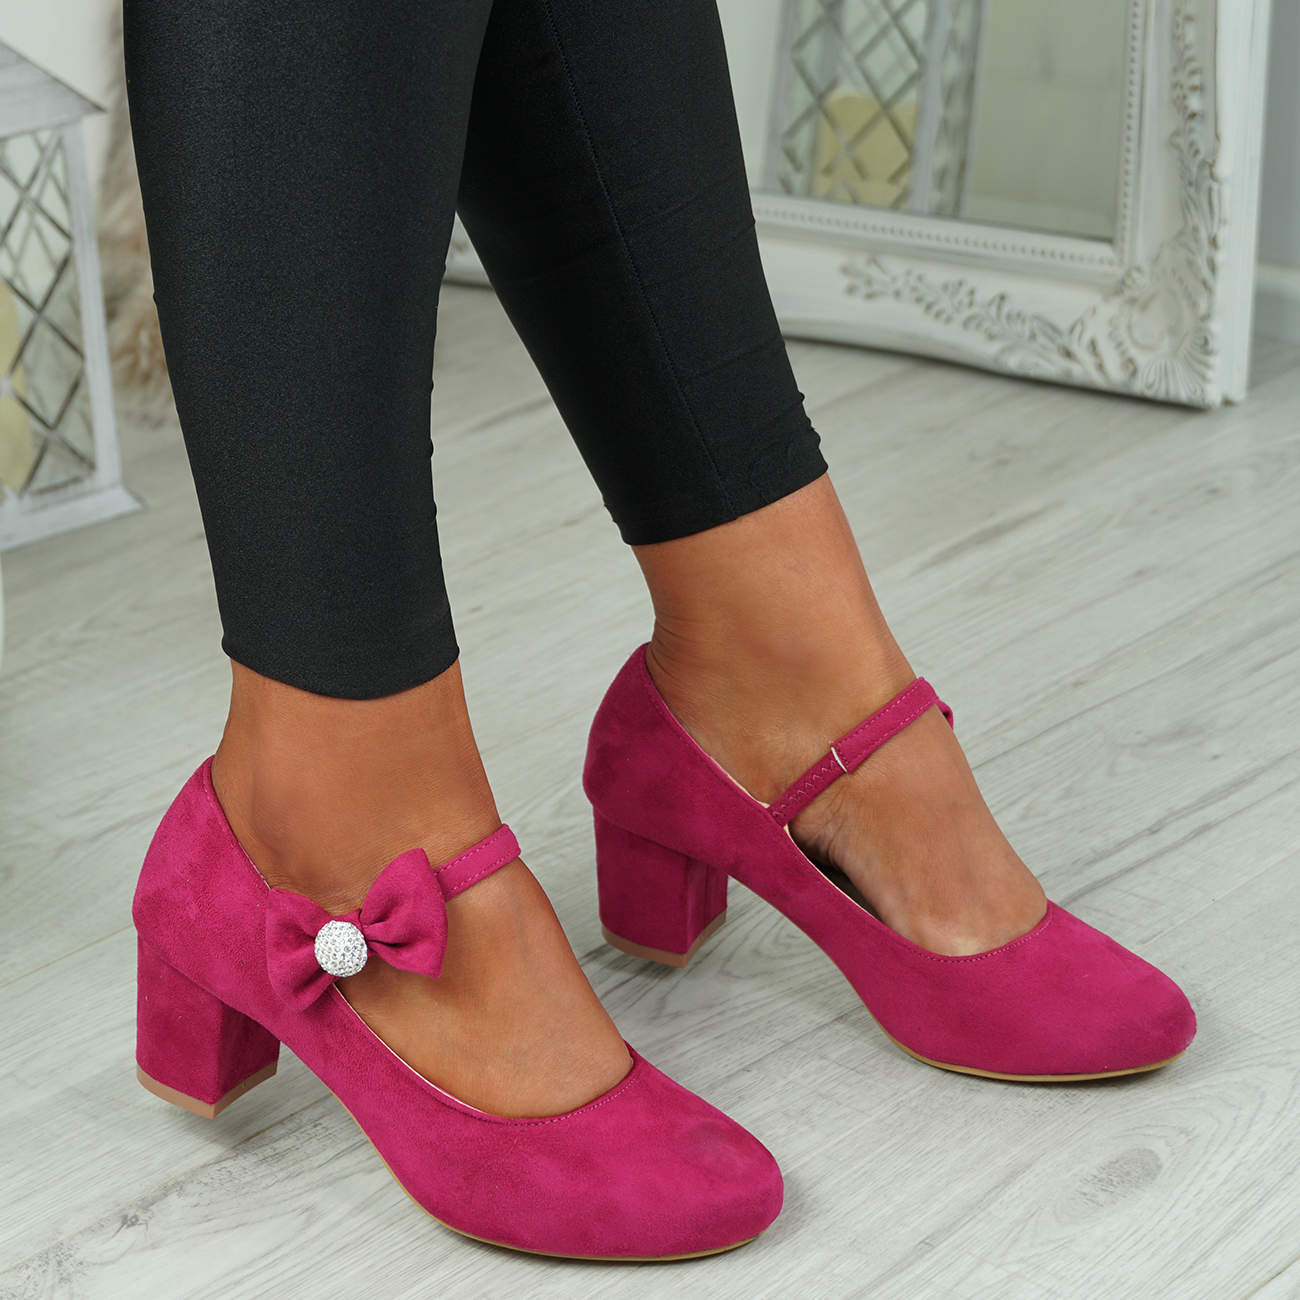 NEW-WOMENS-BLOCK-HEEL-PUMPS-BOW-BUCKLE-STRAP-ROUNDED-TOE-CASUAL-SHOES-SIZE thumbnail 13